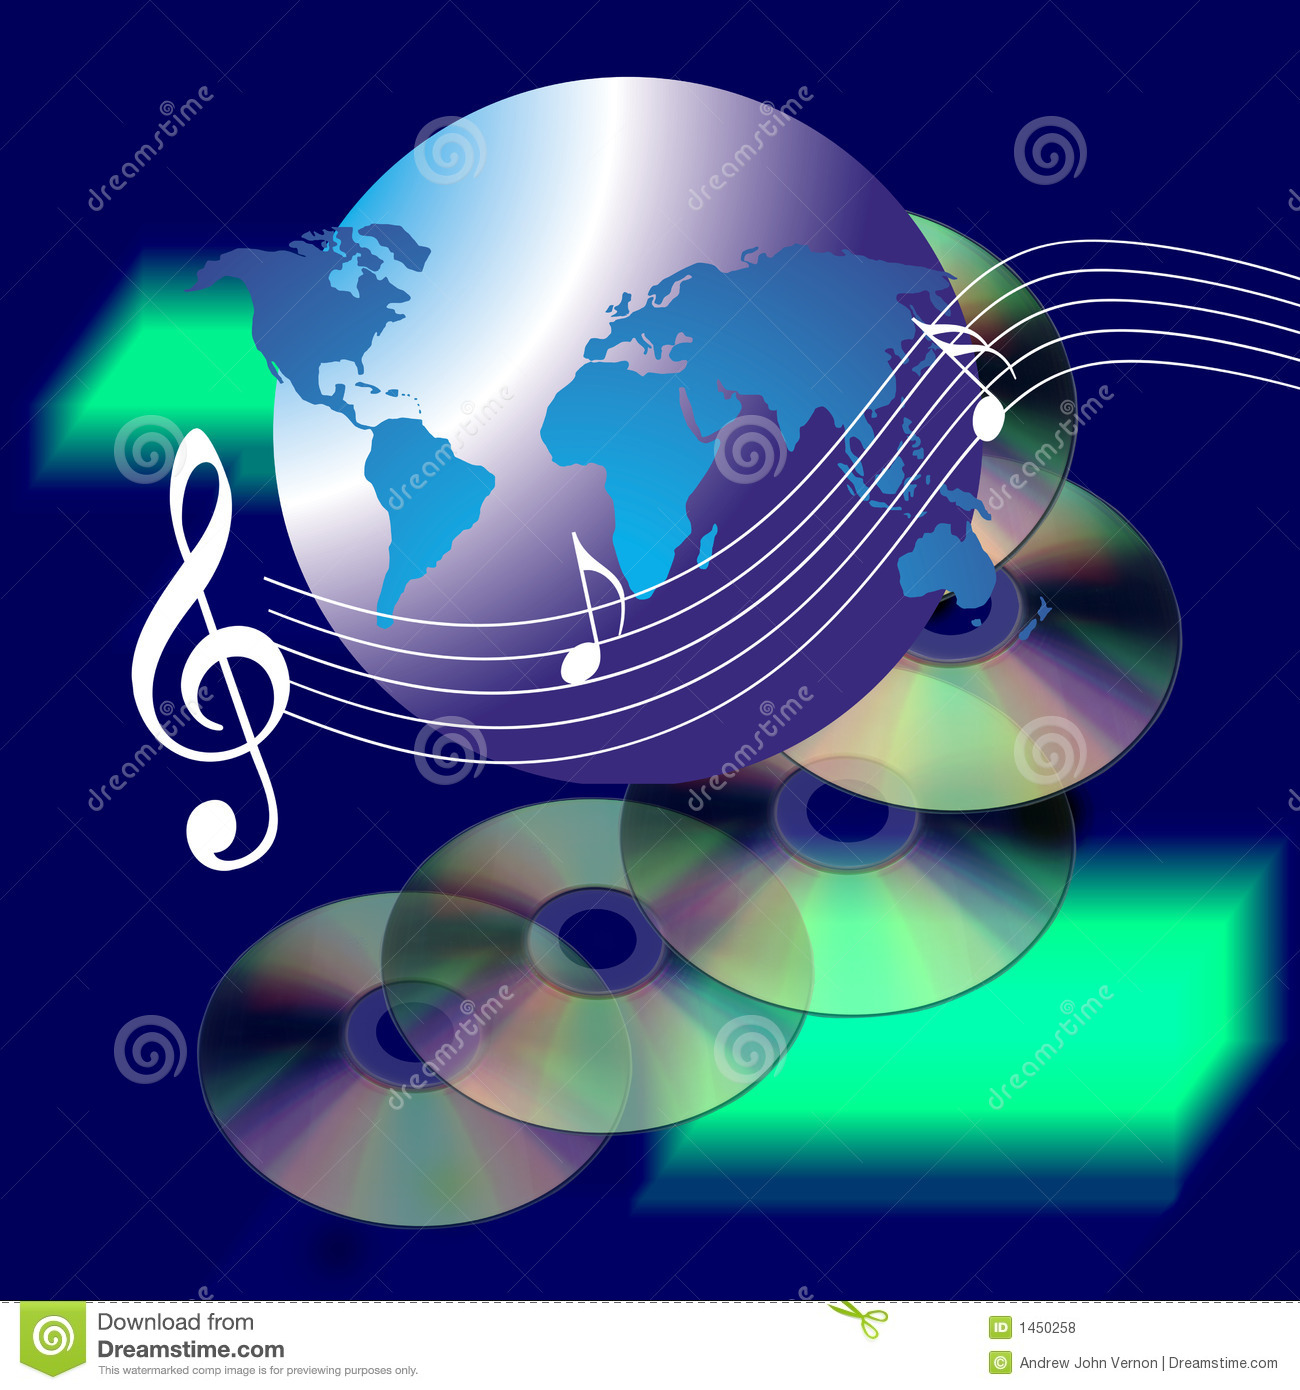 music cd internet notes background musical drawing royalty